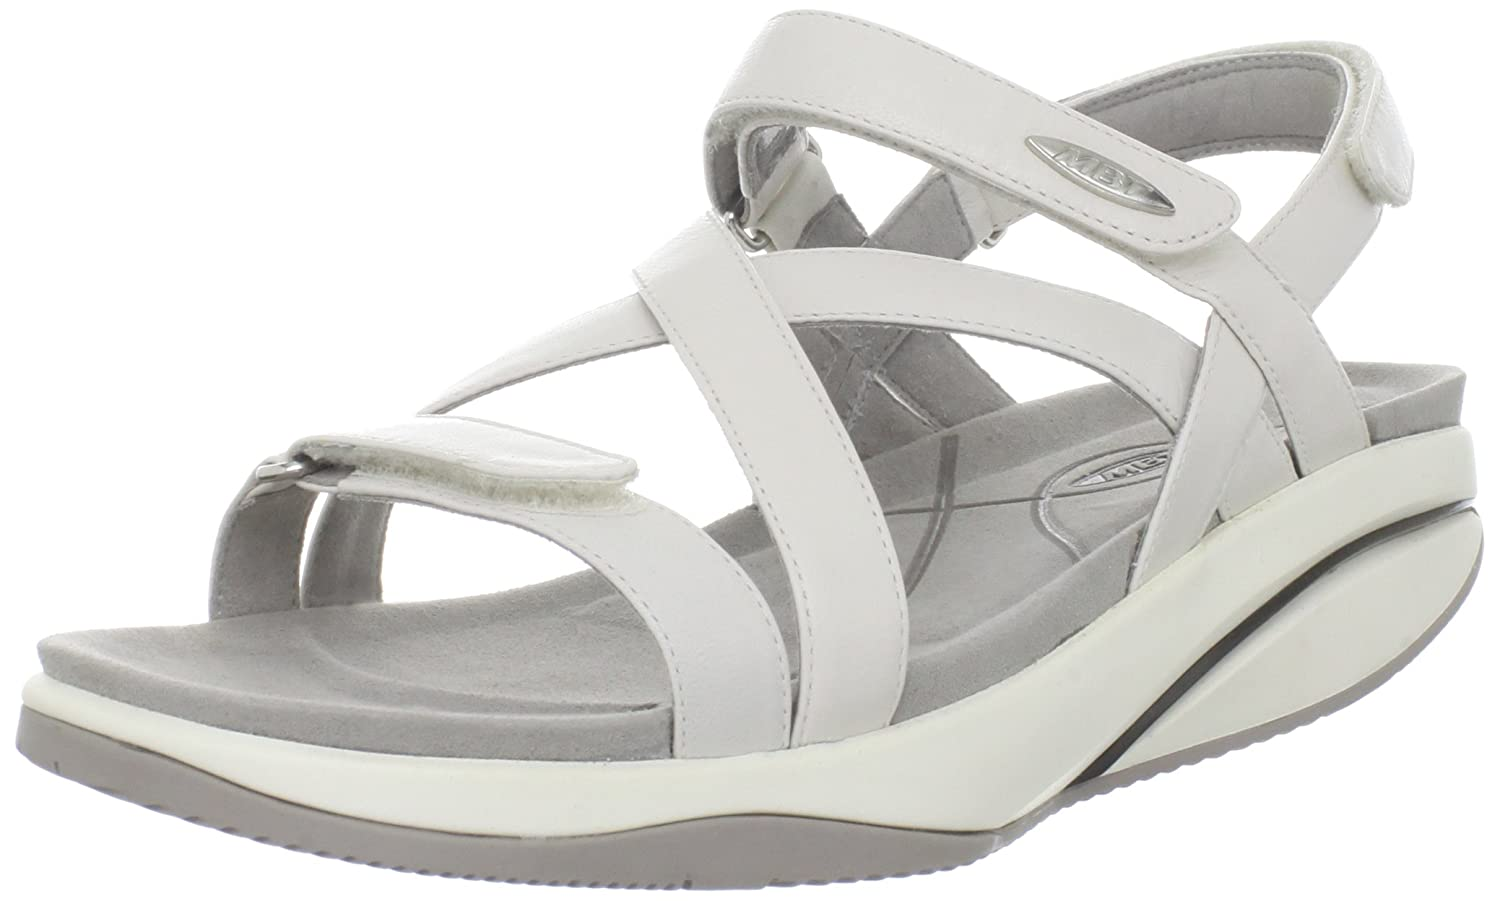 Vionic Port Frances Backstrap Wedge B071WSY8NW 11 M US|White